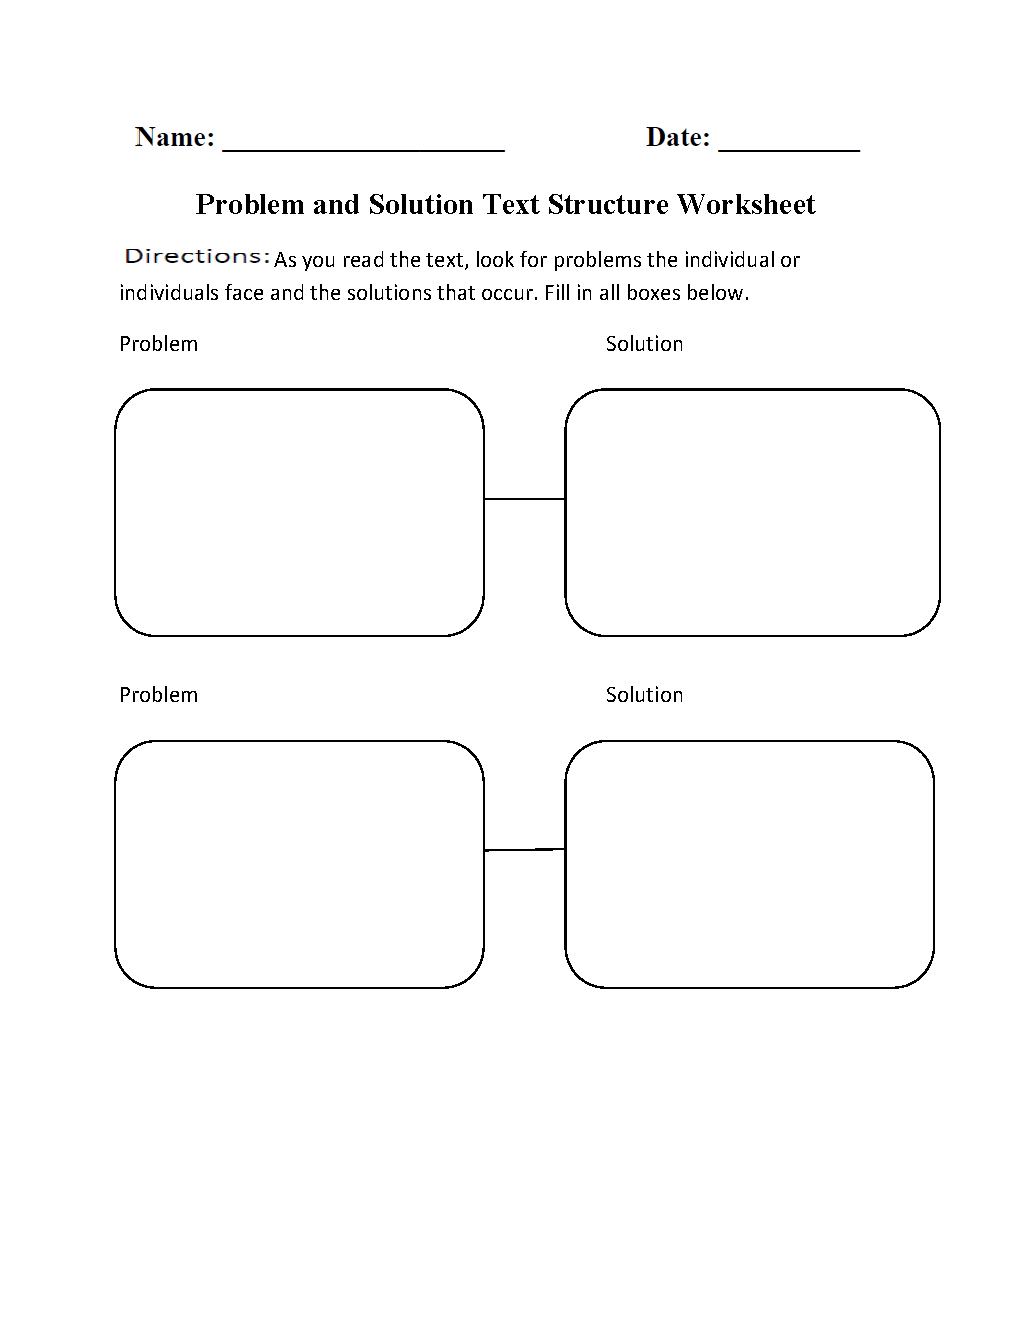 Text Structures W Ksheet Free W Ksheets Libr Ry Downlo D Nd